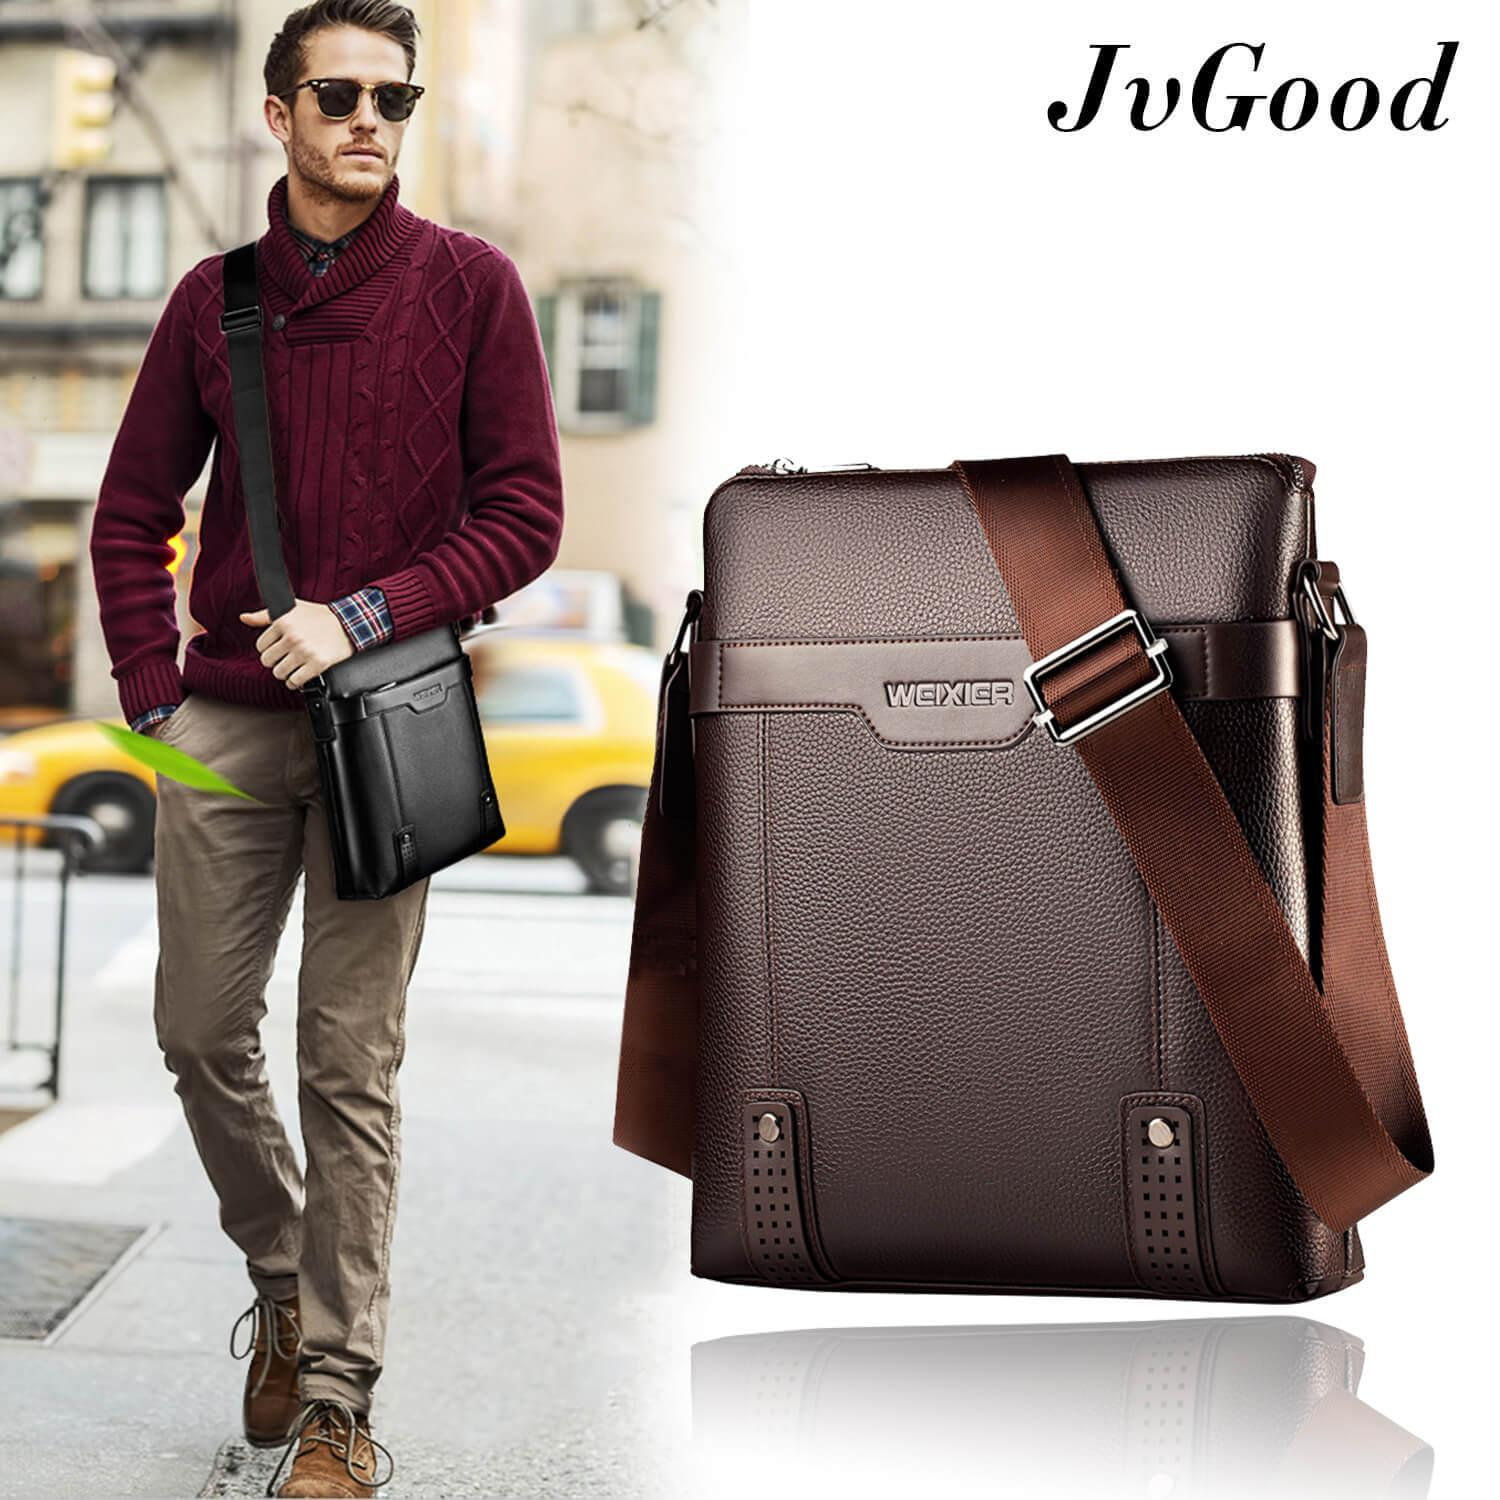 a75dad947 JvGood Messenger Bag PU Leather Men Bag Sling Shoulder Crossbody Bag Casual  Business Men Fashion